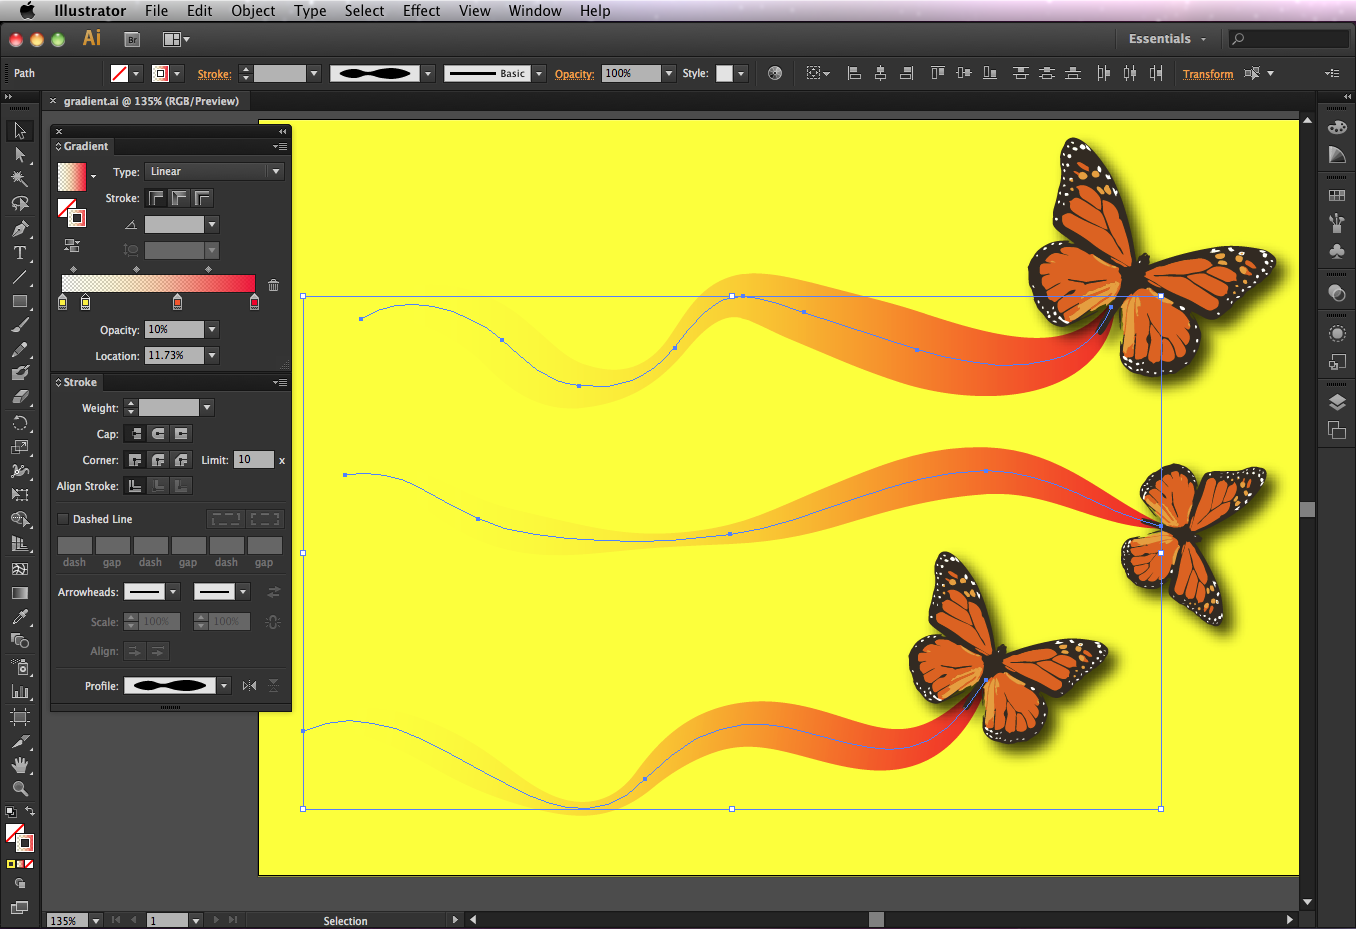 Adobe Illustrator CS6 windows